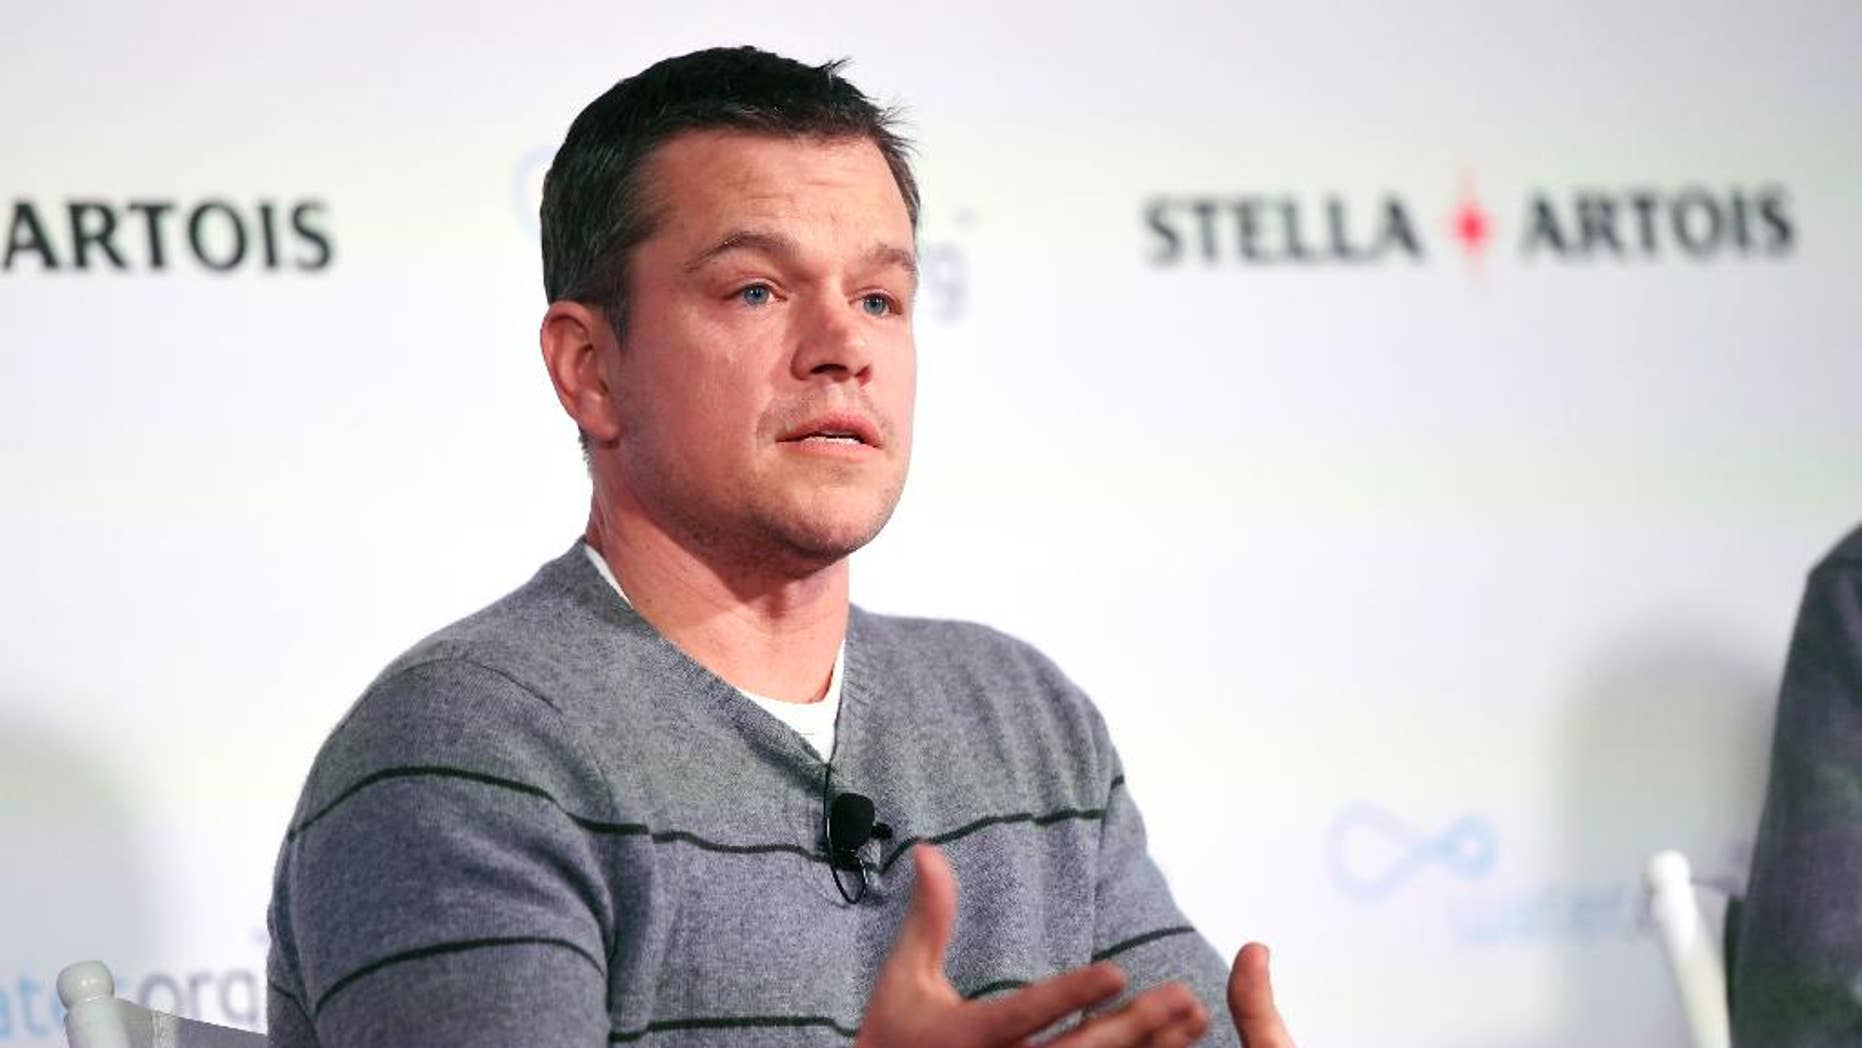 January 23, 2016. Actor Matt Damon, co-founder of Water.org, takes part in a panel discussion on the global water crisis during the 2016 Sundance Film Festival.